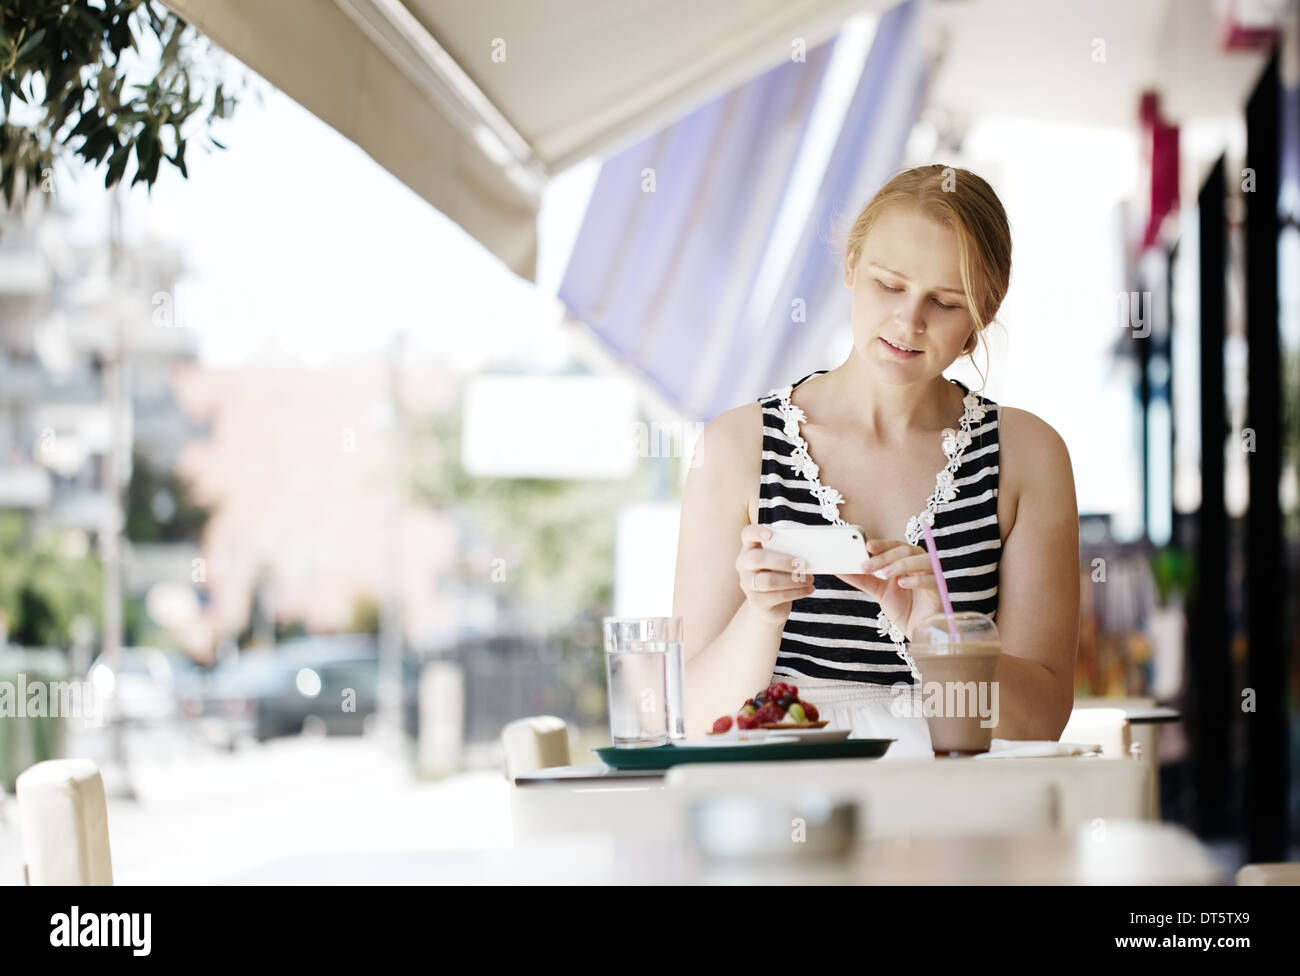 Attractive woman taking picture of a pastry on her mobile - Stock Photo